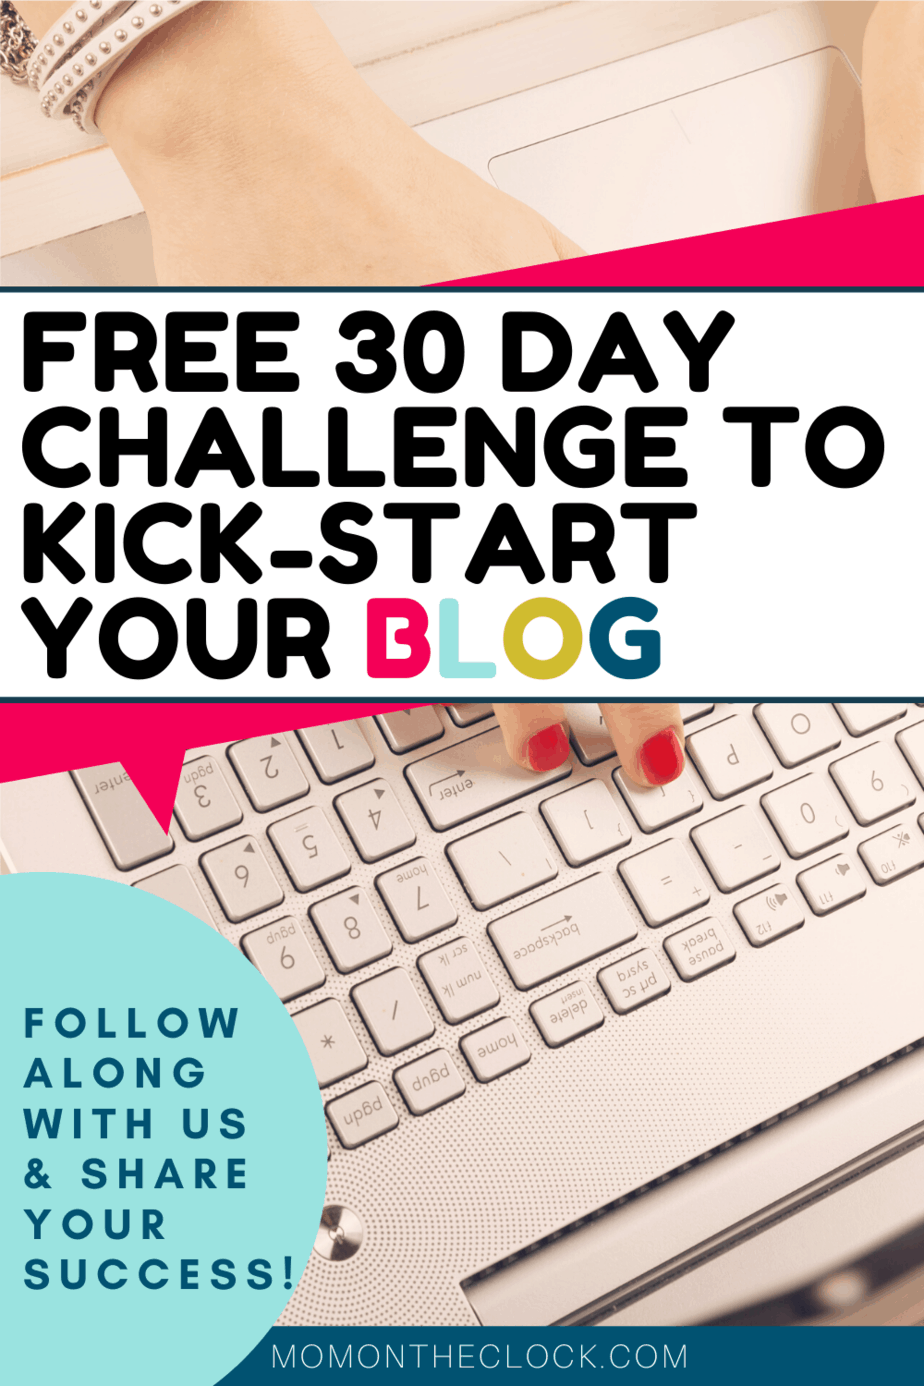 Join us for the 30 day blog challenge to kick-start your blog with great content consistently.